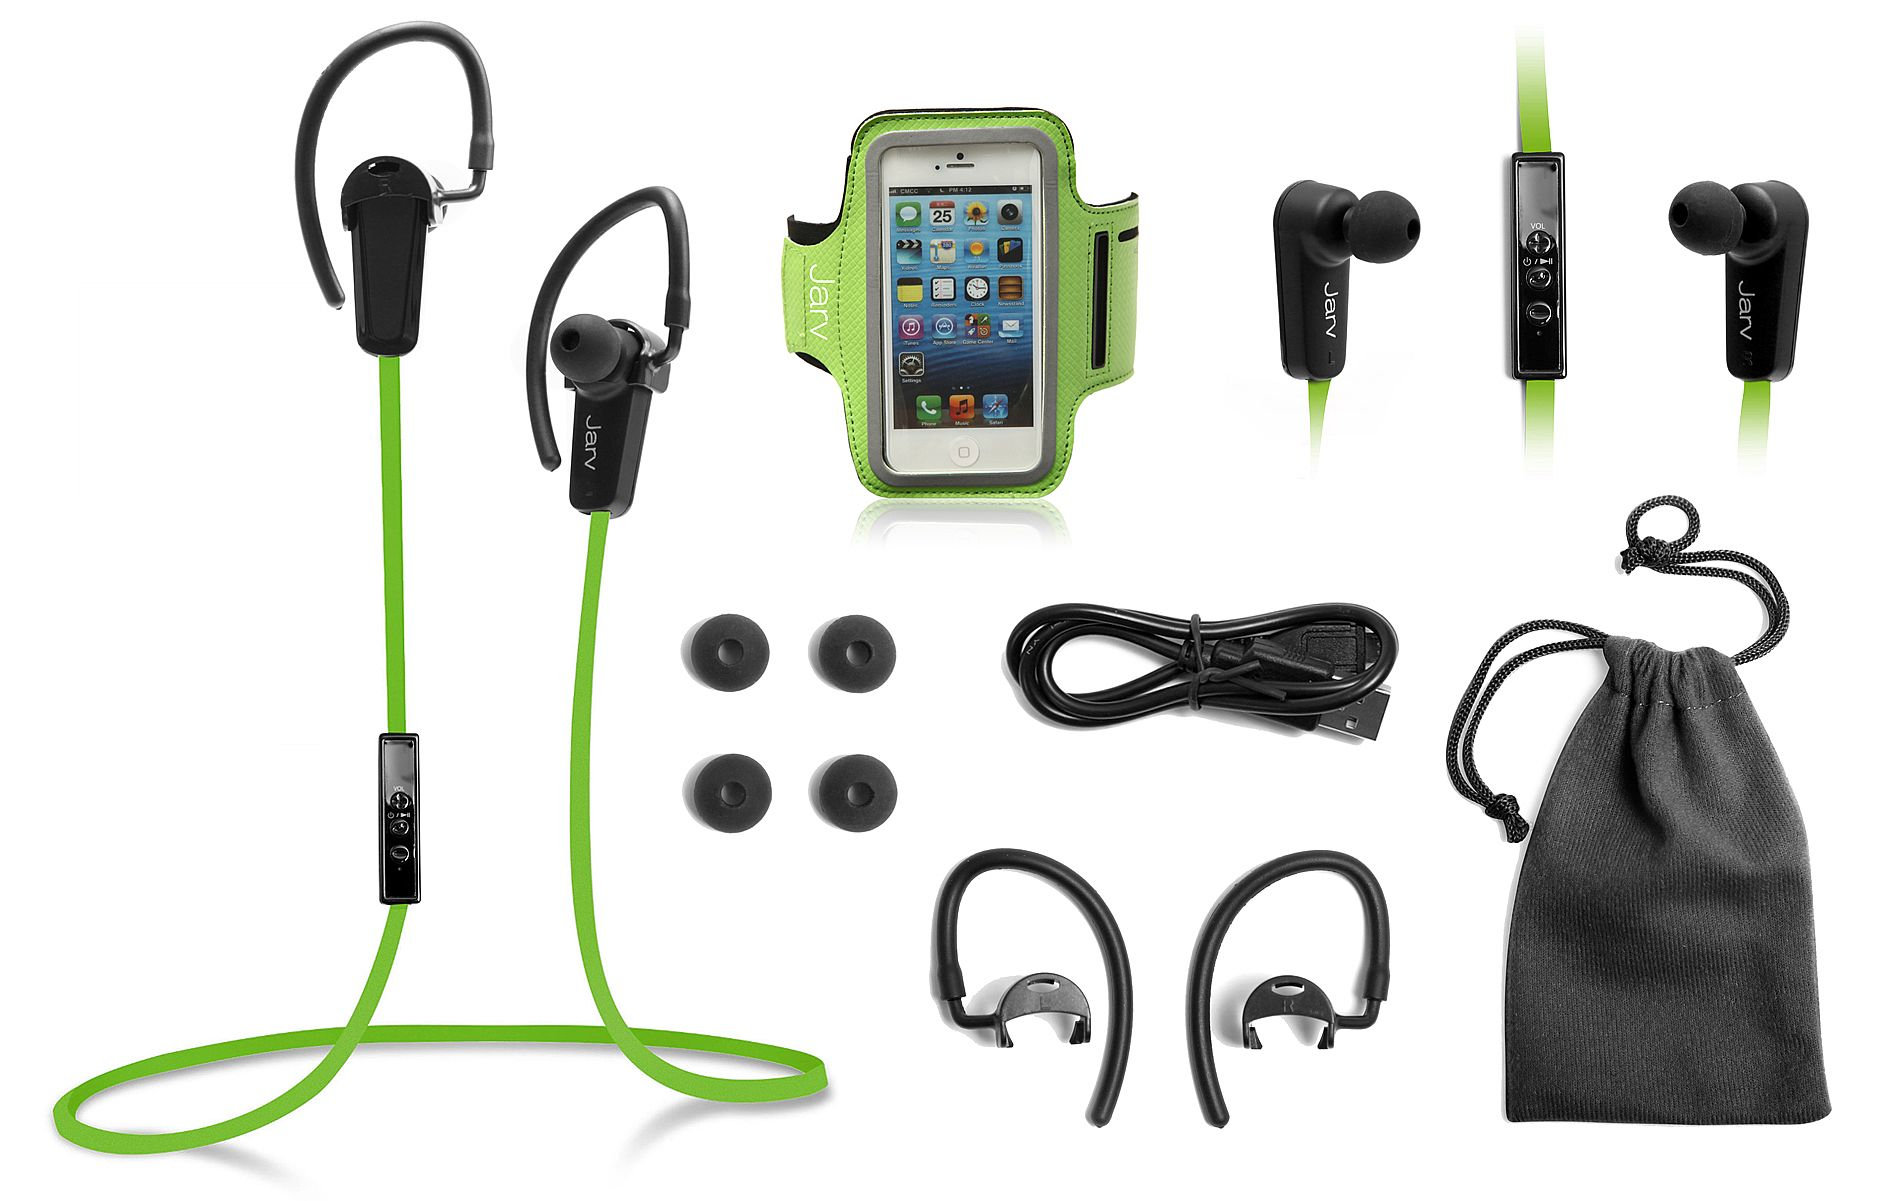 Earbuds microphone volume control - earbuds microphone durable